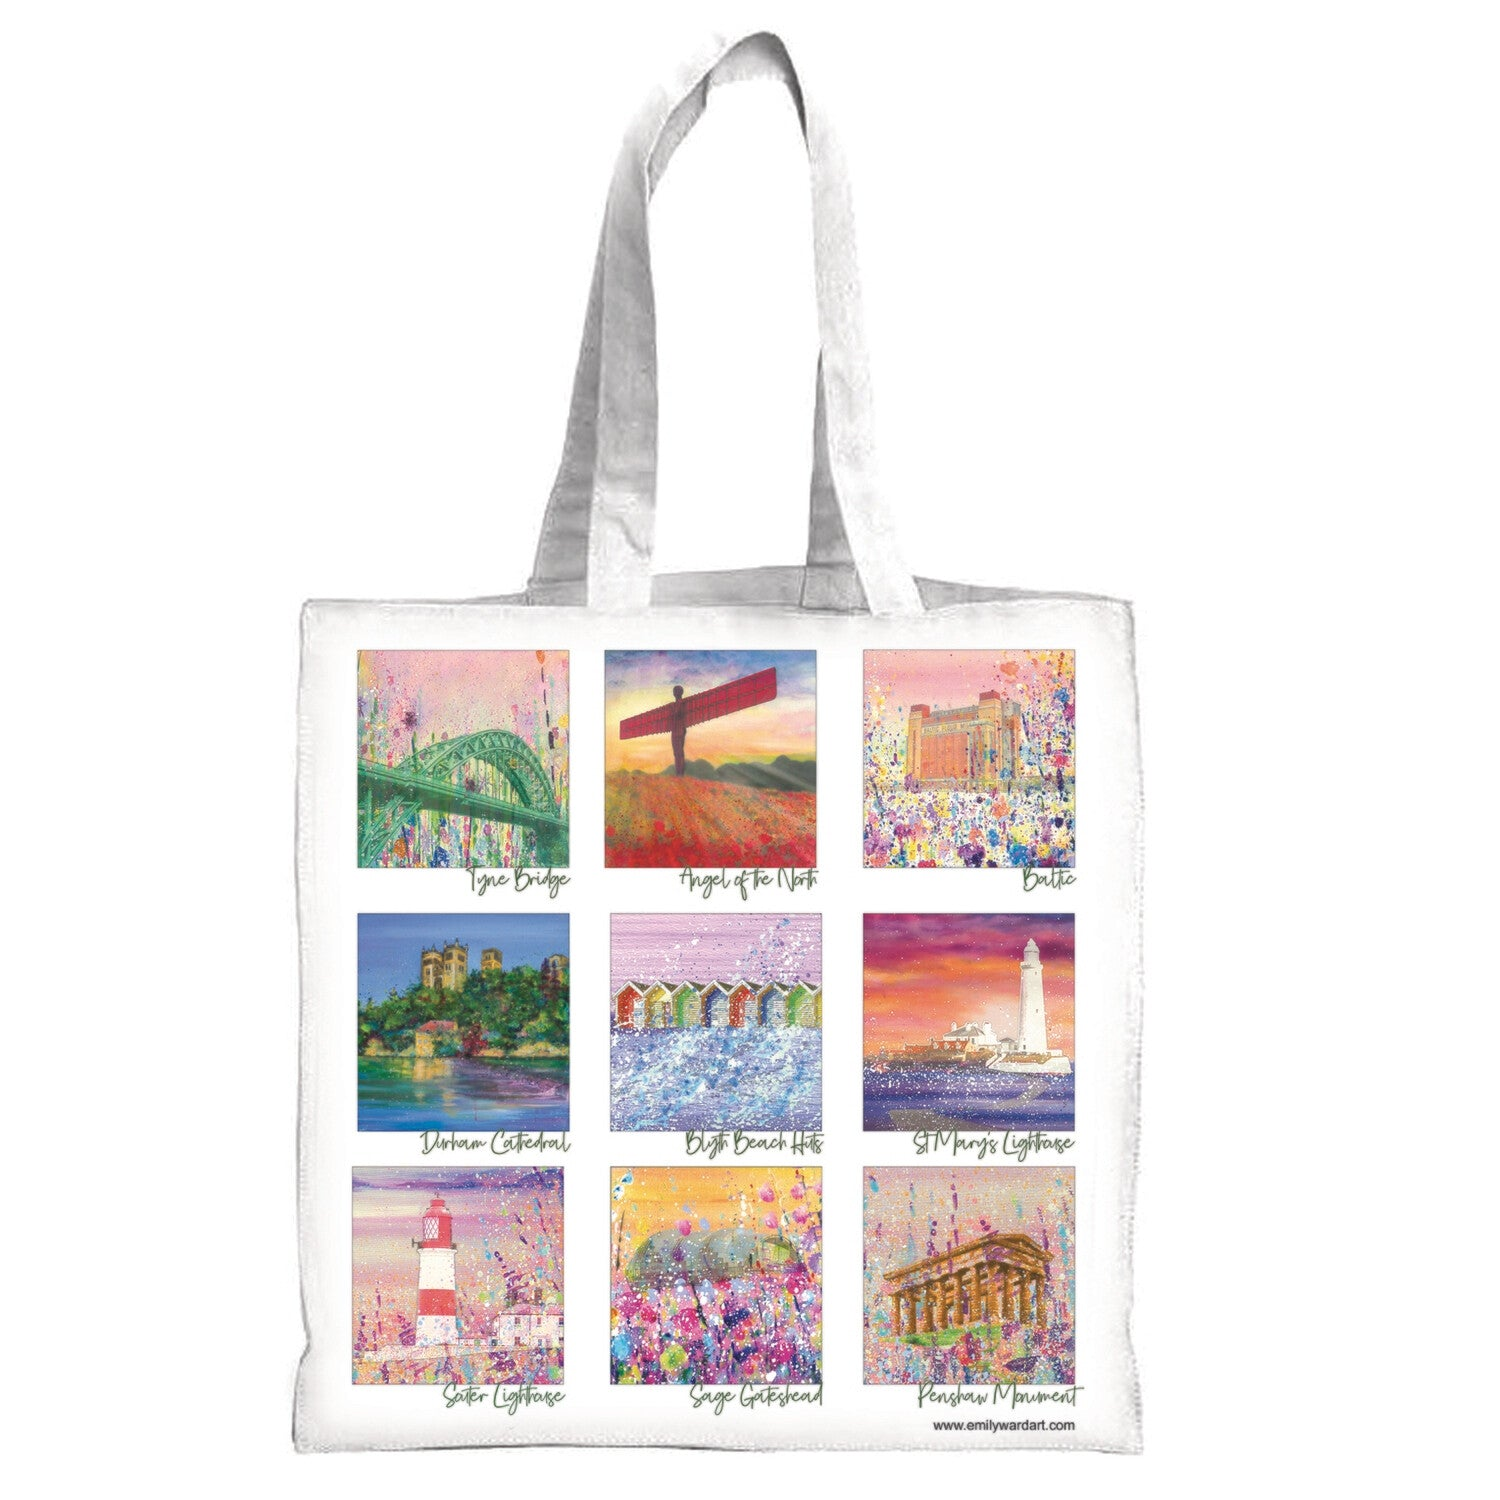 Emily Ward Art Cotton Canvas Bag